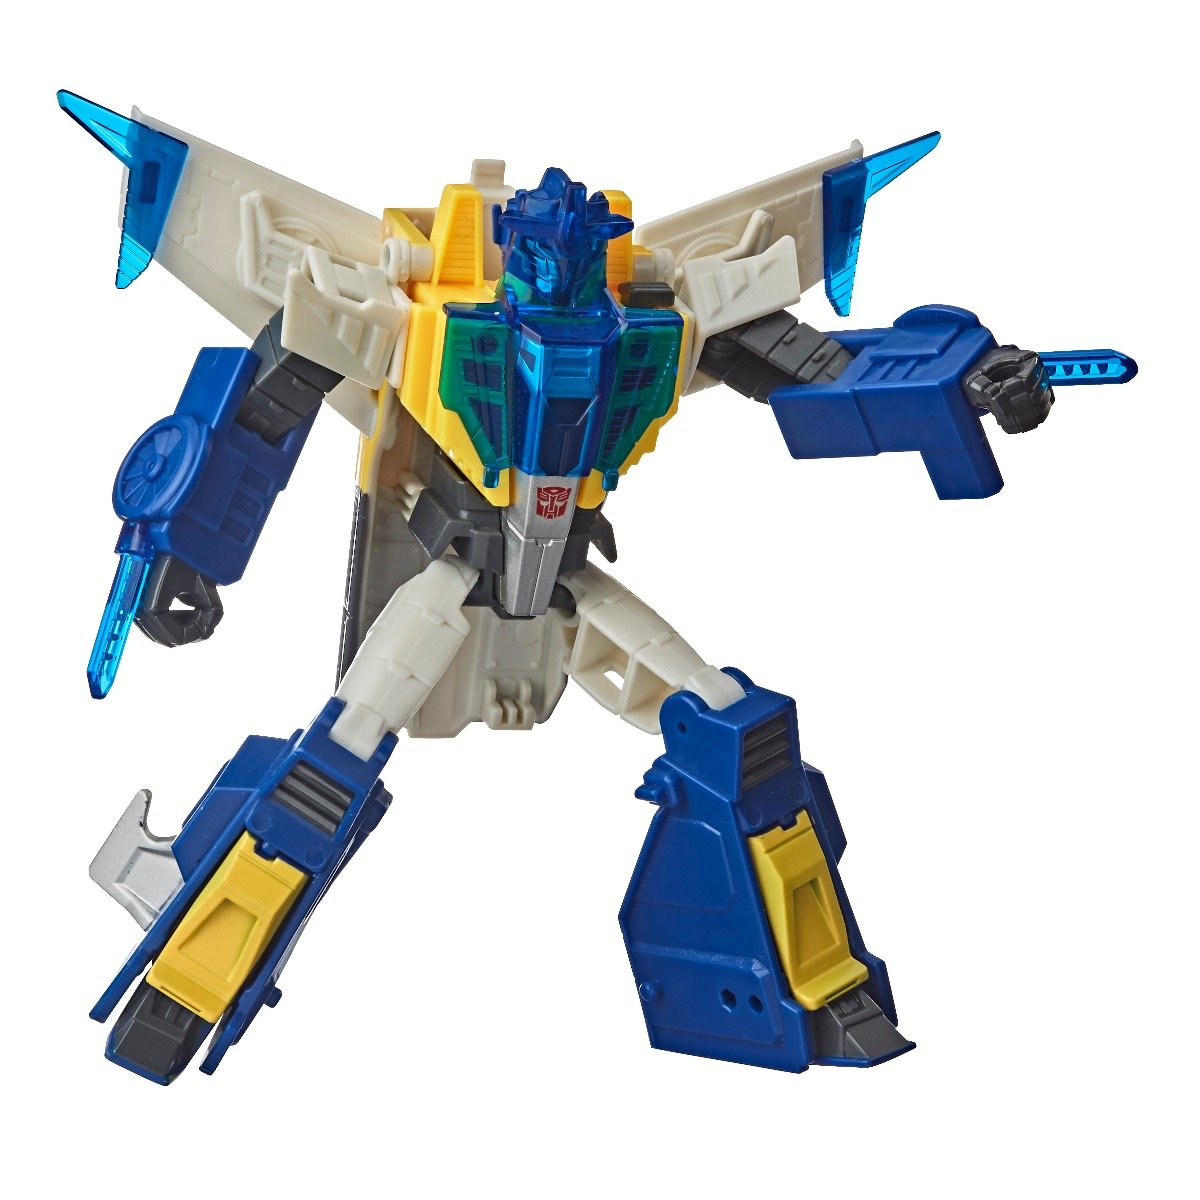 Figurina Transformers Cyberverse Adventures, Battle Call, Meteor Fire, E8375